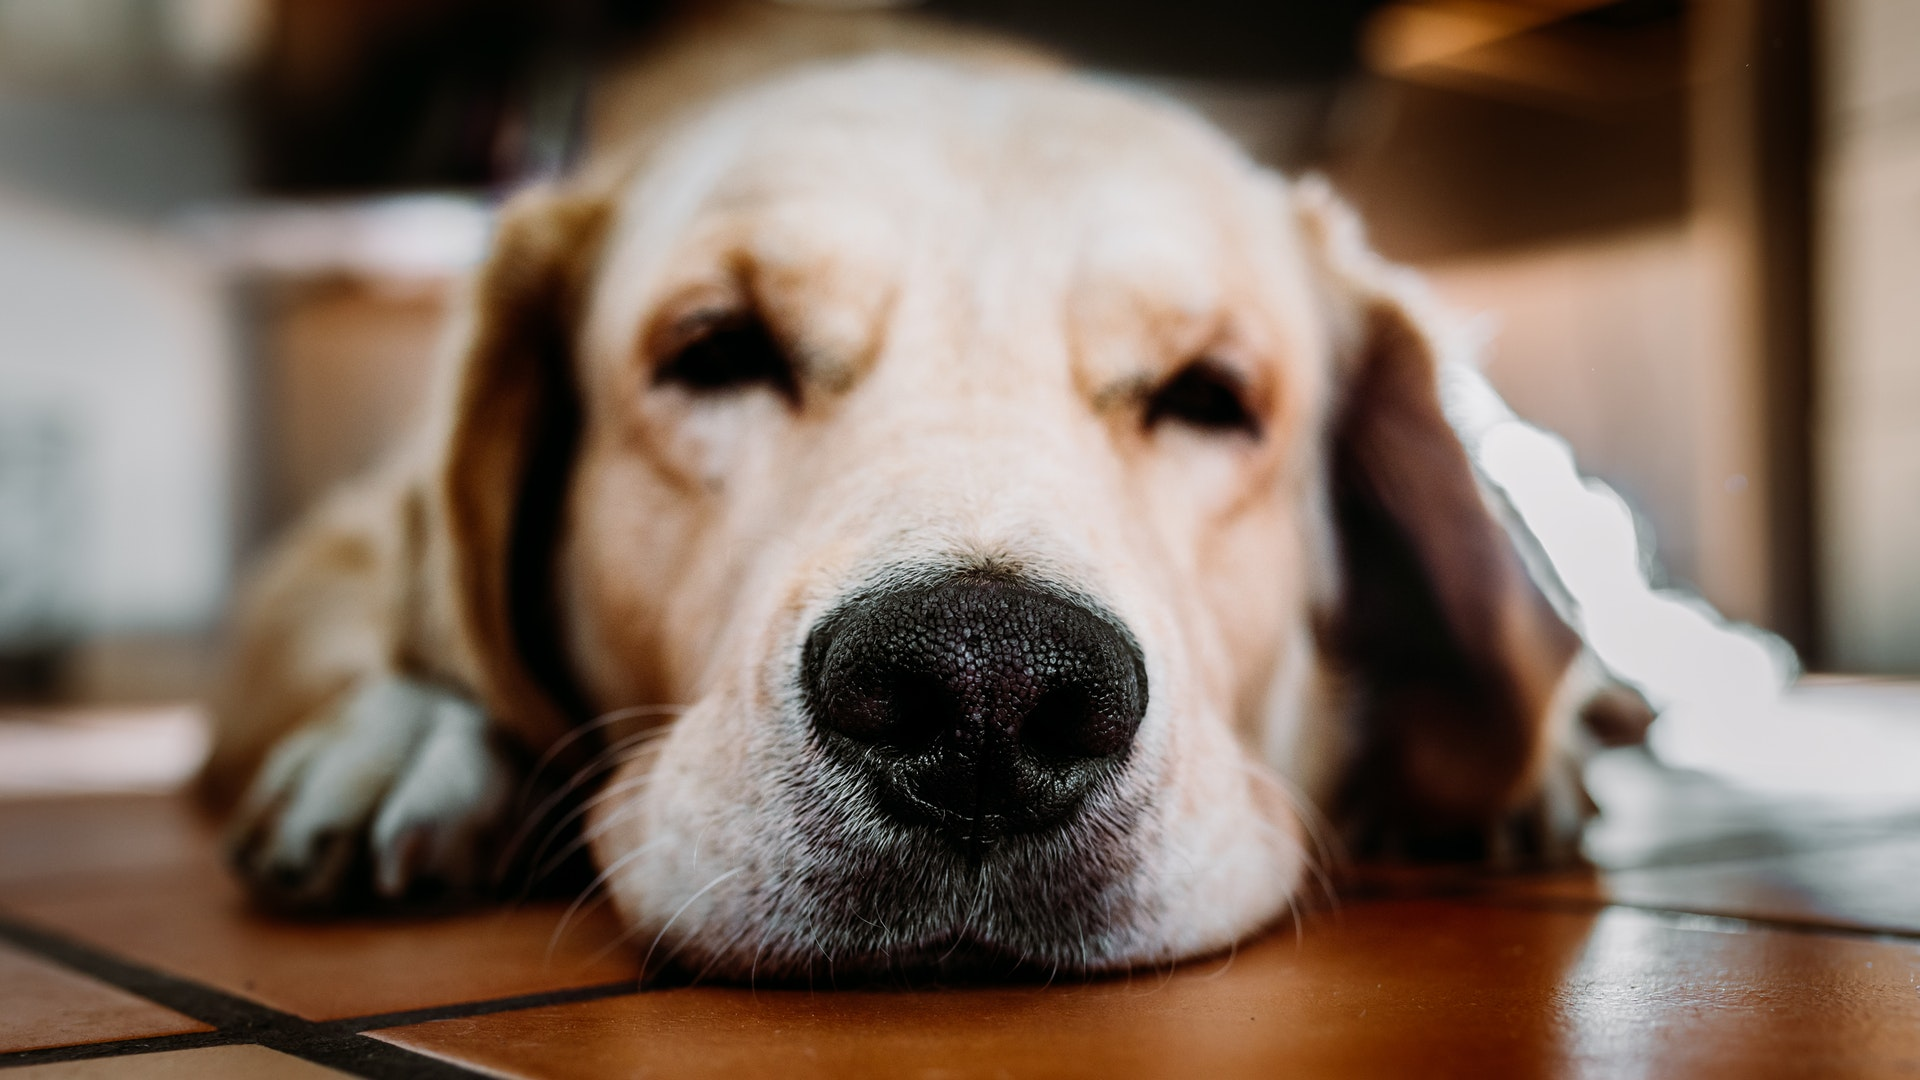 Dogs have cold, wet noses as part of their body cooling system and because they lick their noses. Dogs' noses may also be wet...